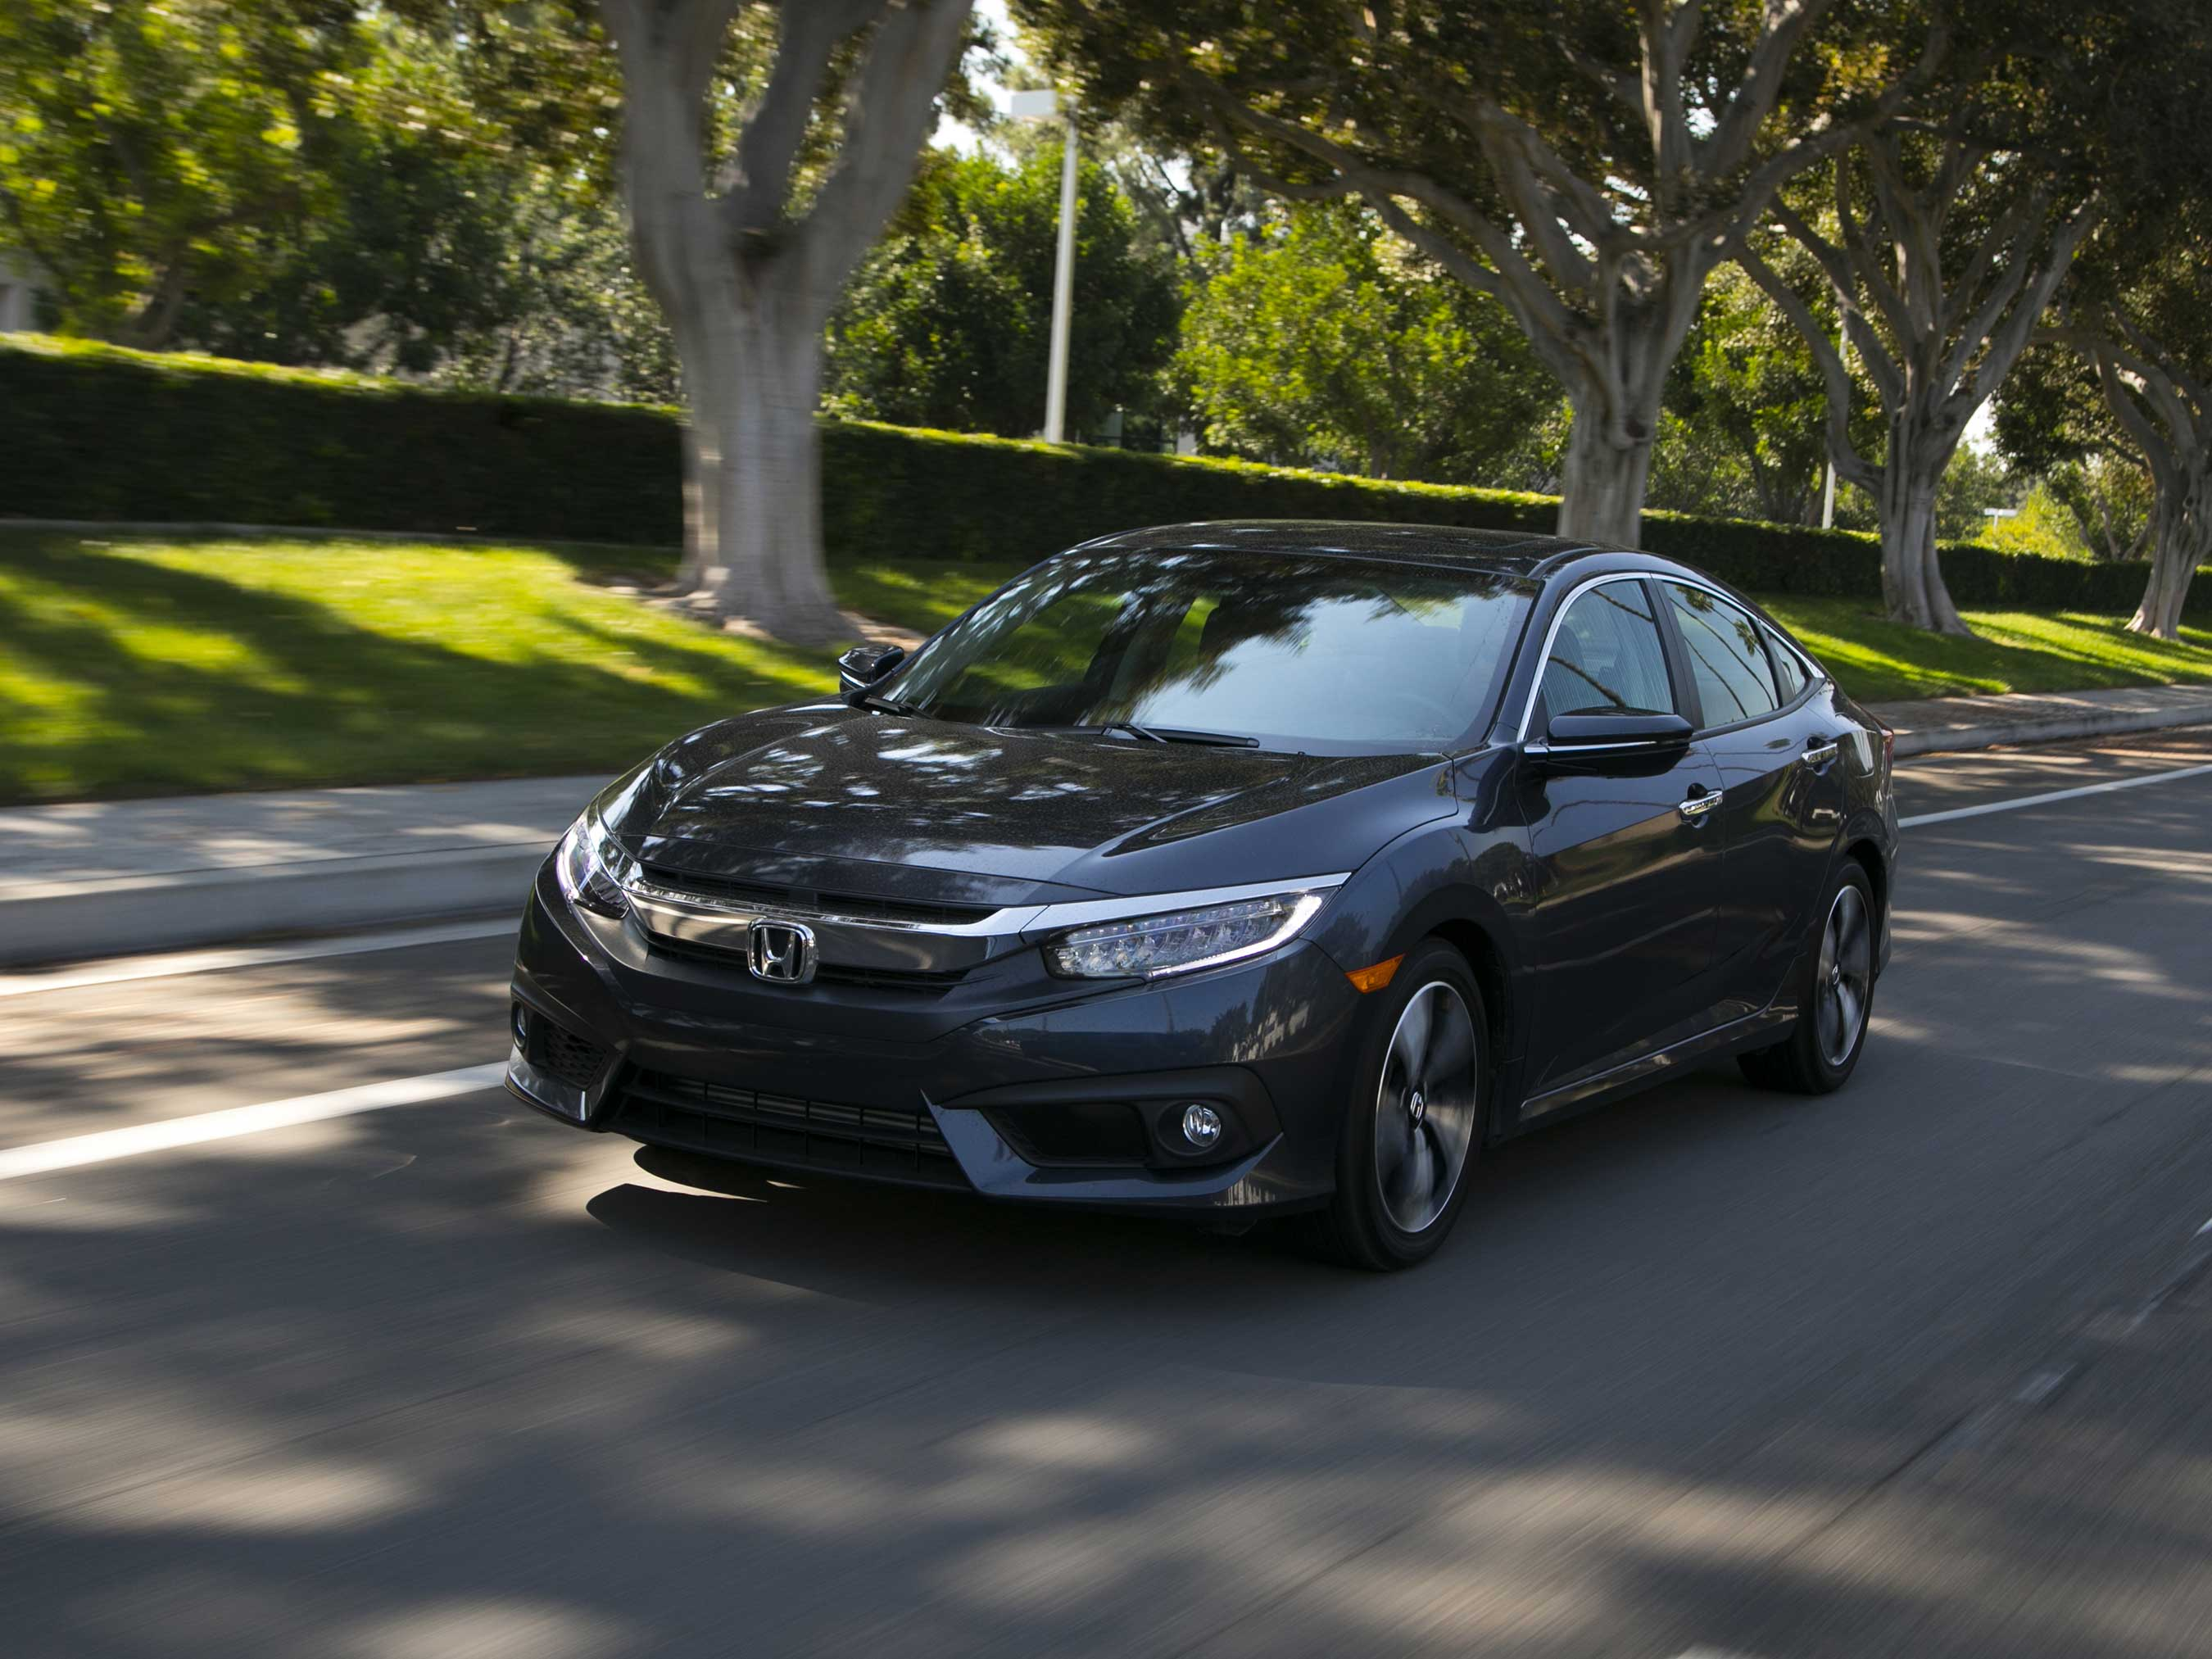 KELLEY BLUE BOOK ANNOUNCES WINNERS OF 2017 BEST BUY AWARDS HONDA CIVIC REPEATS WIN AS OVERALL THE YEAR